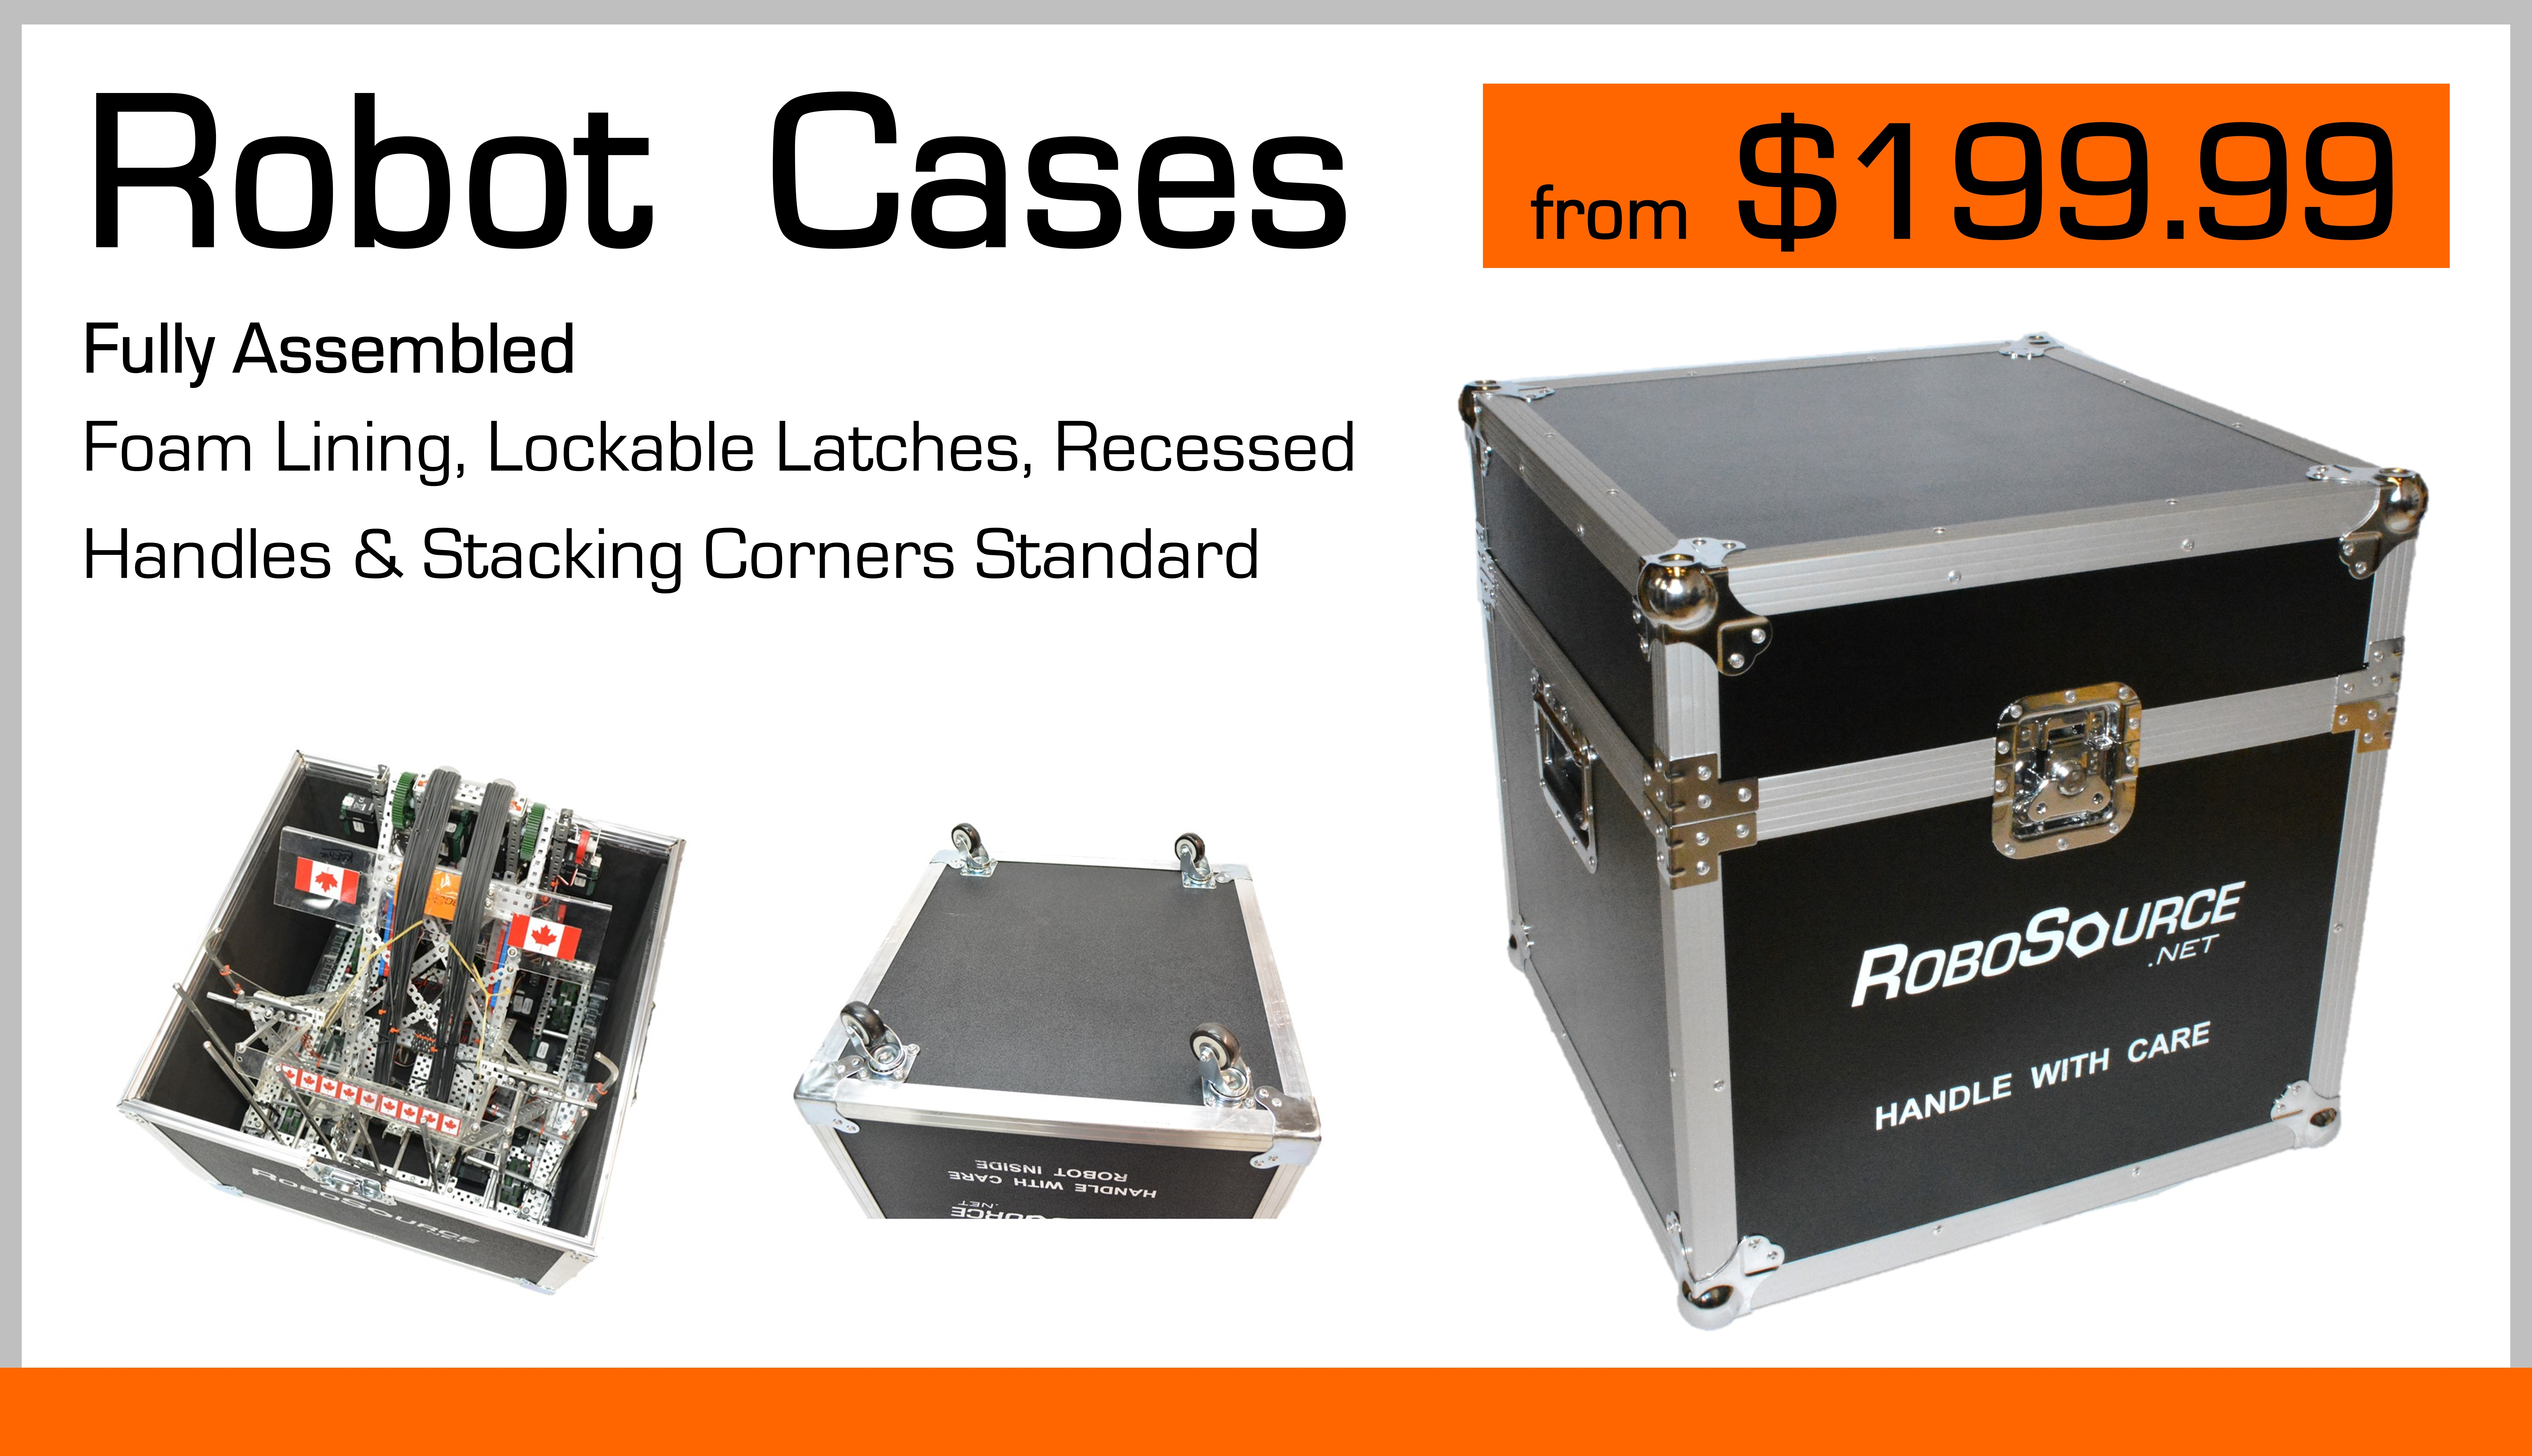 Robosource Robot Cases from $199.99